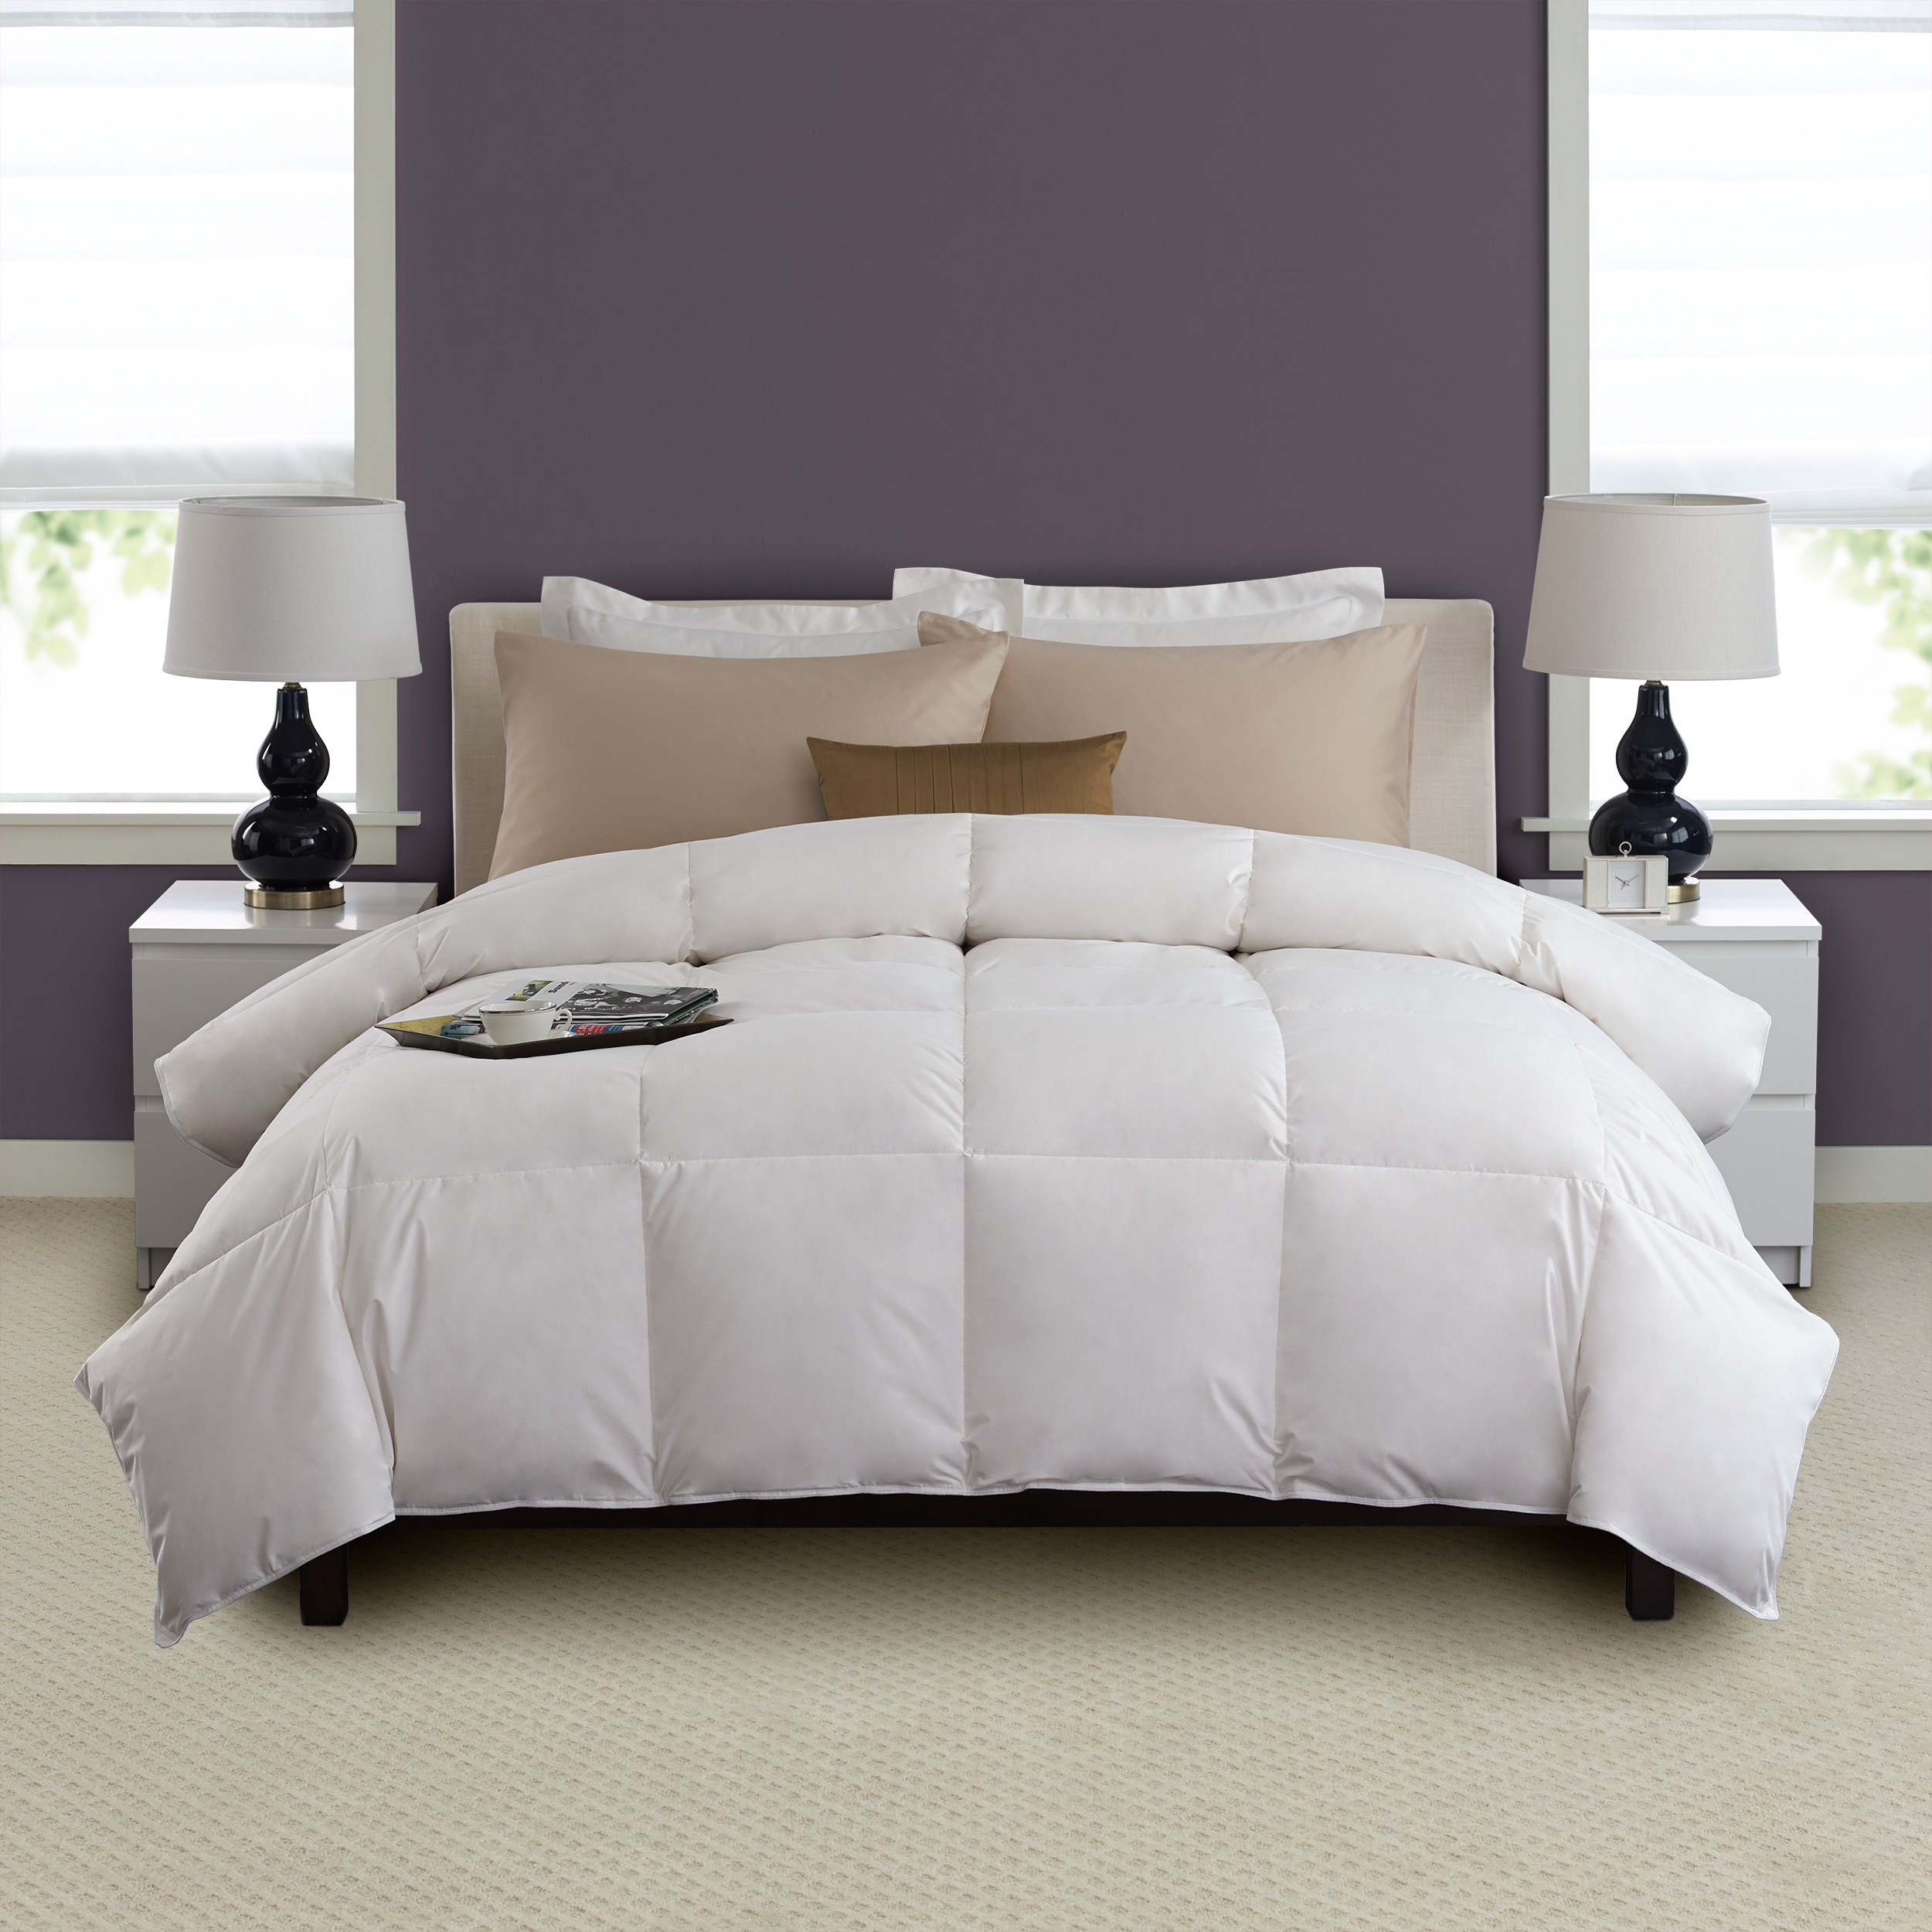 geneva fashion down pinch pin comforter home pleat taupe ella com amazon queen set piece